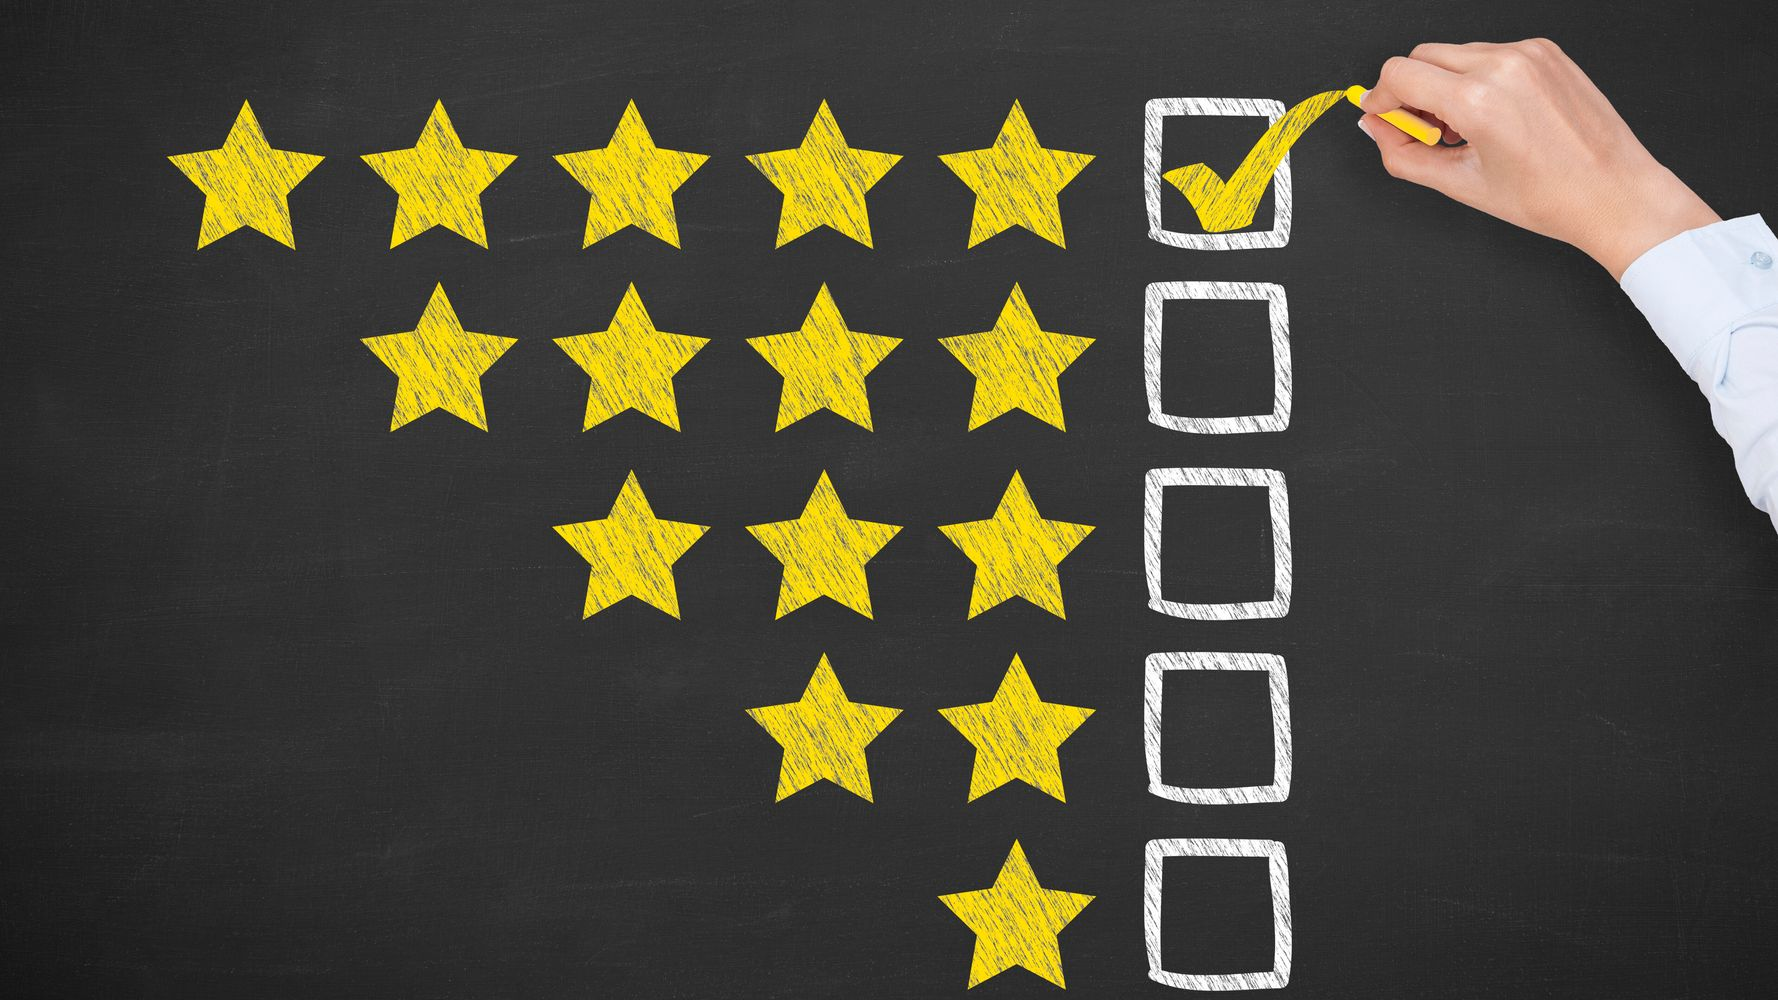 3 Ways Performance Reviews Could Be Better This Year